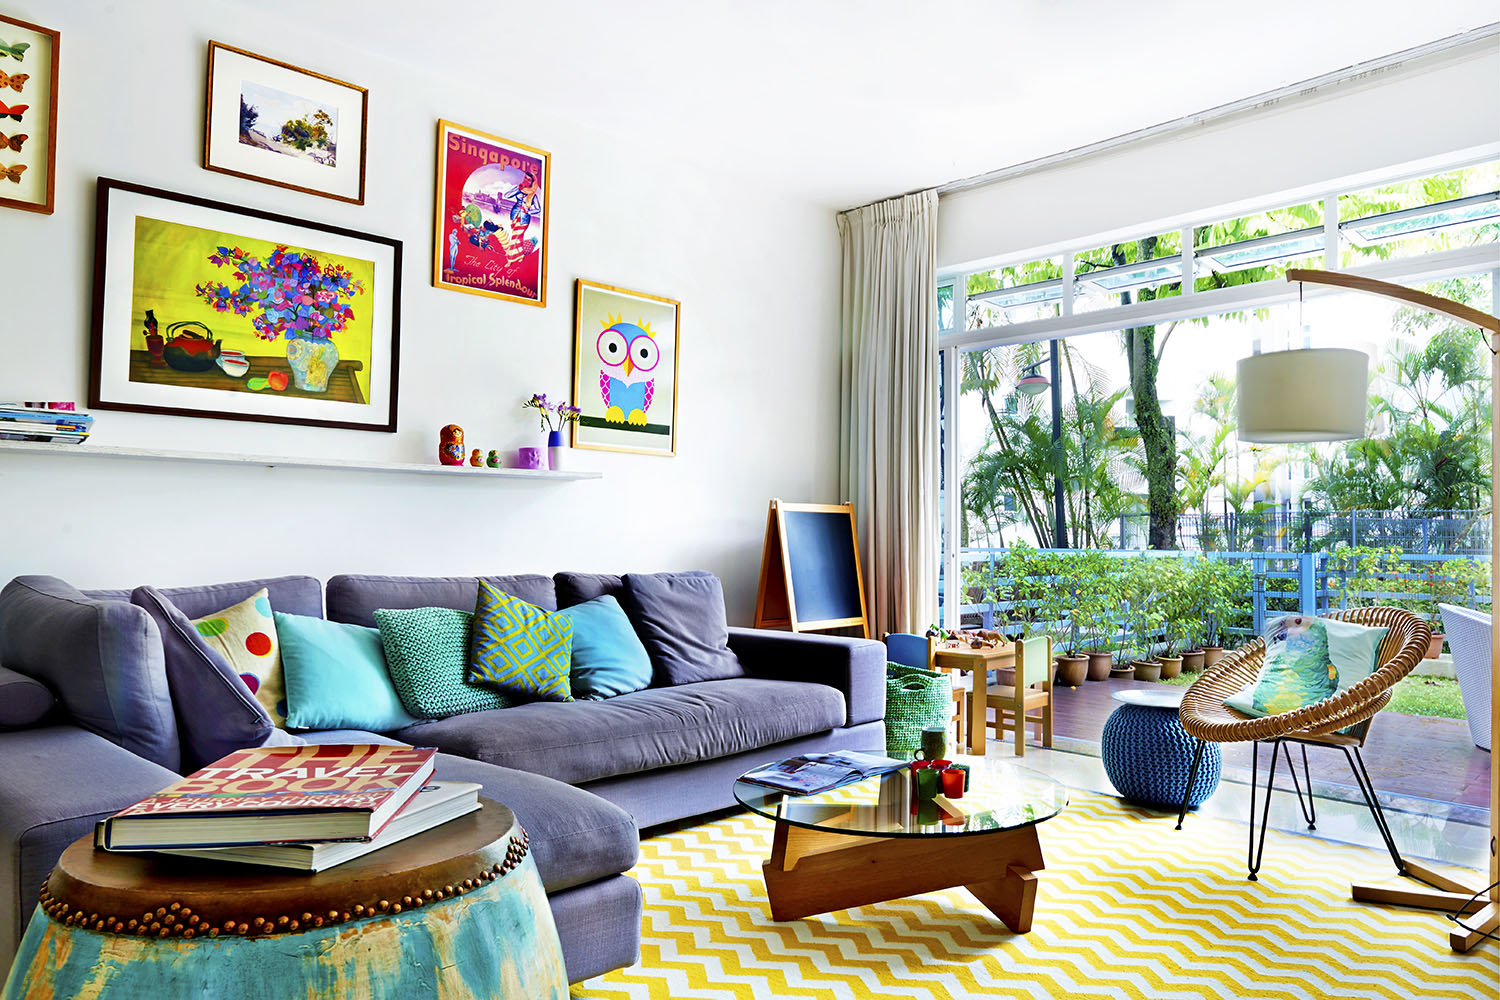 Retro living room filled with colorful and bright graphic designs or iconic symbols